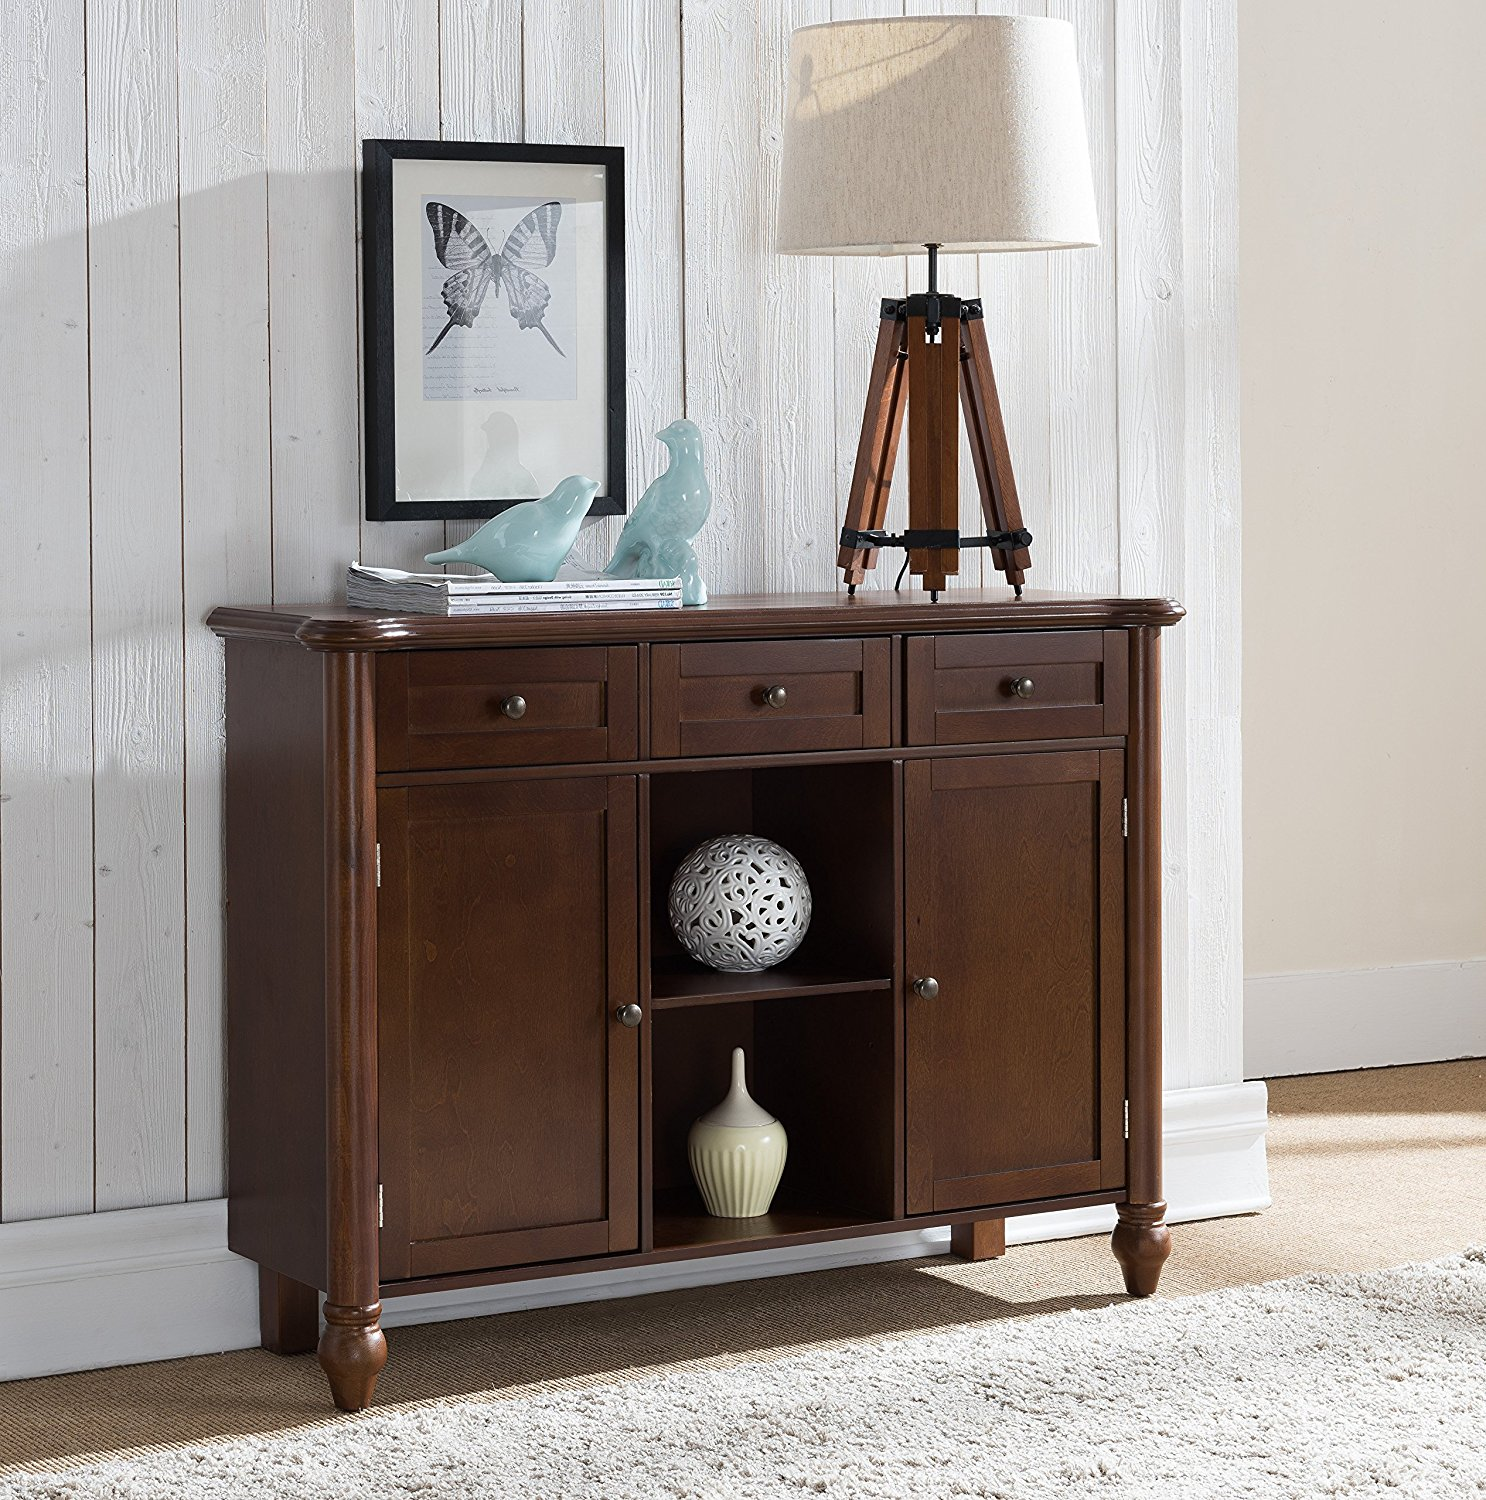 Walnut Wood Sideboard Buffet Console Display Table with Storage Drawers, Cabinet Doors & Shelves